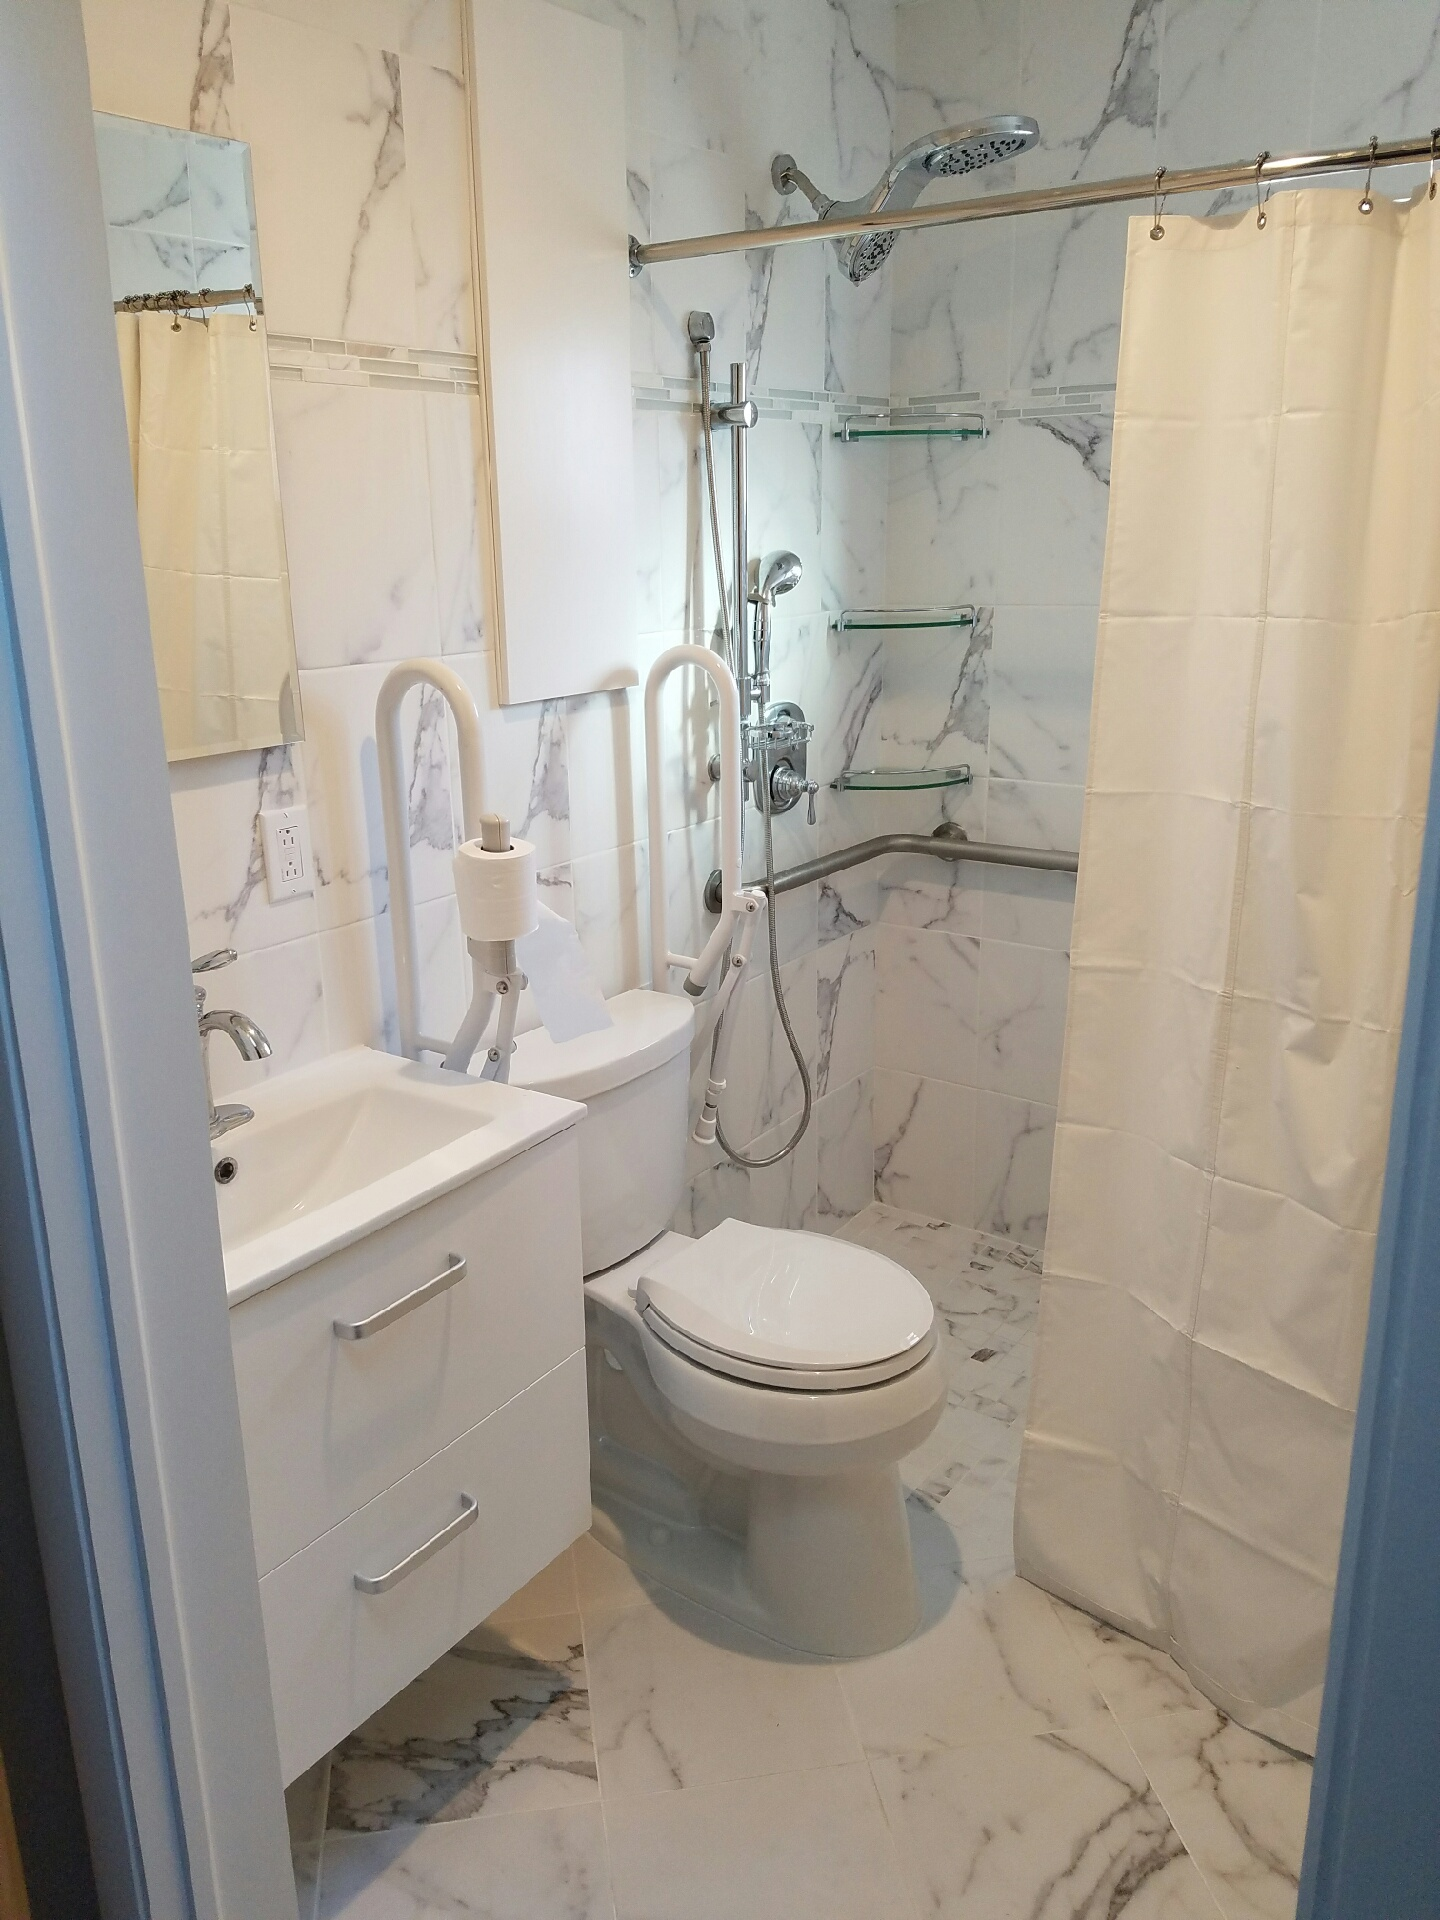 Conversion Tub to Roll-in Shower